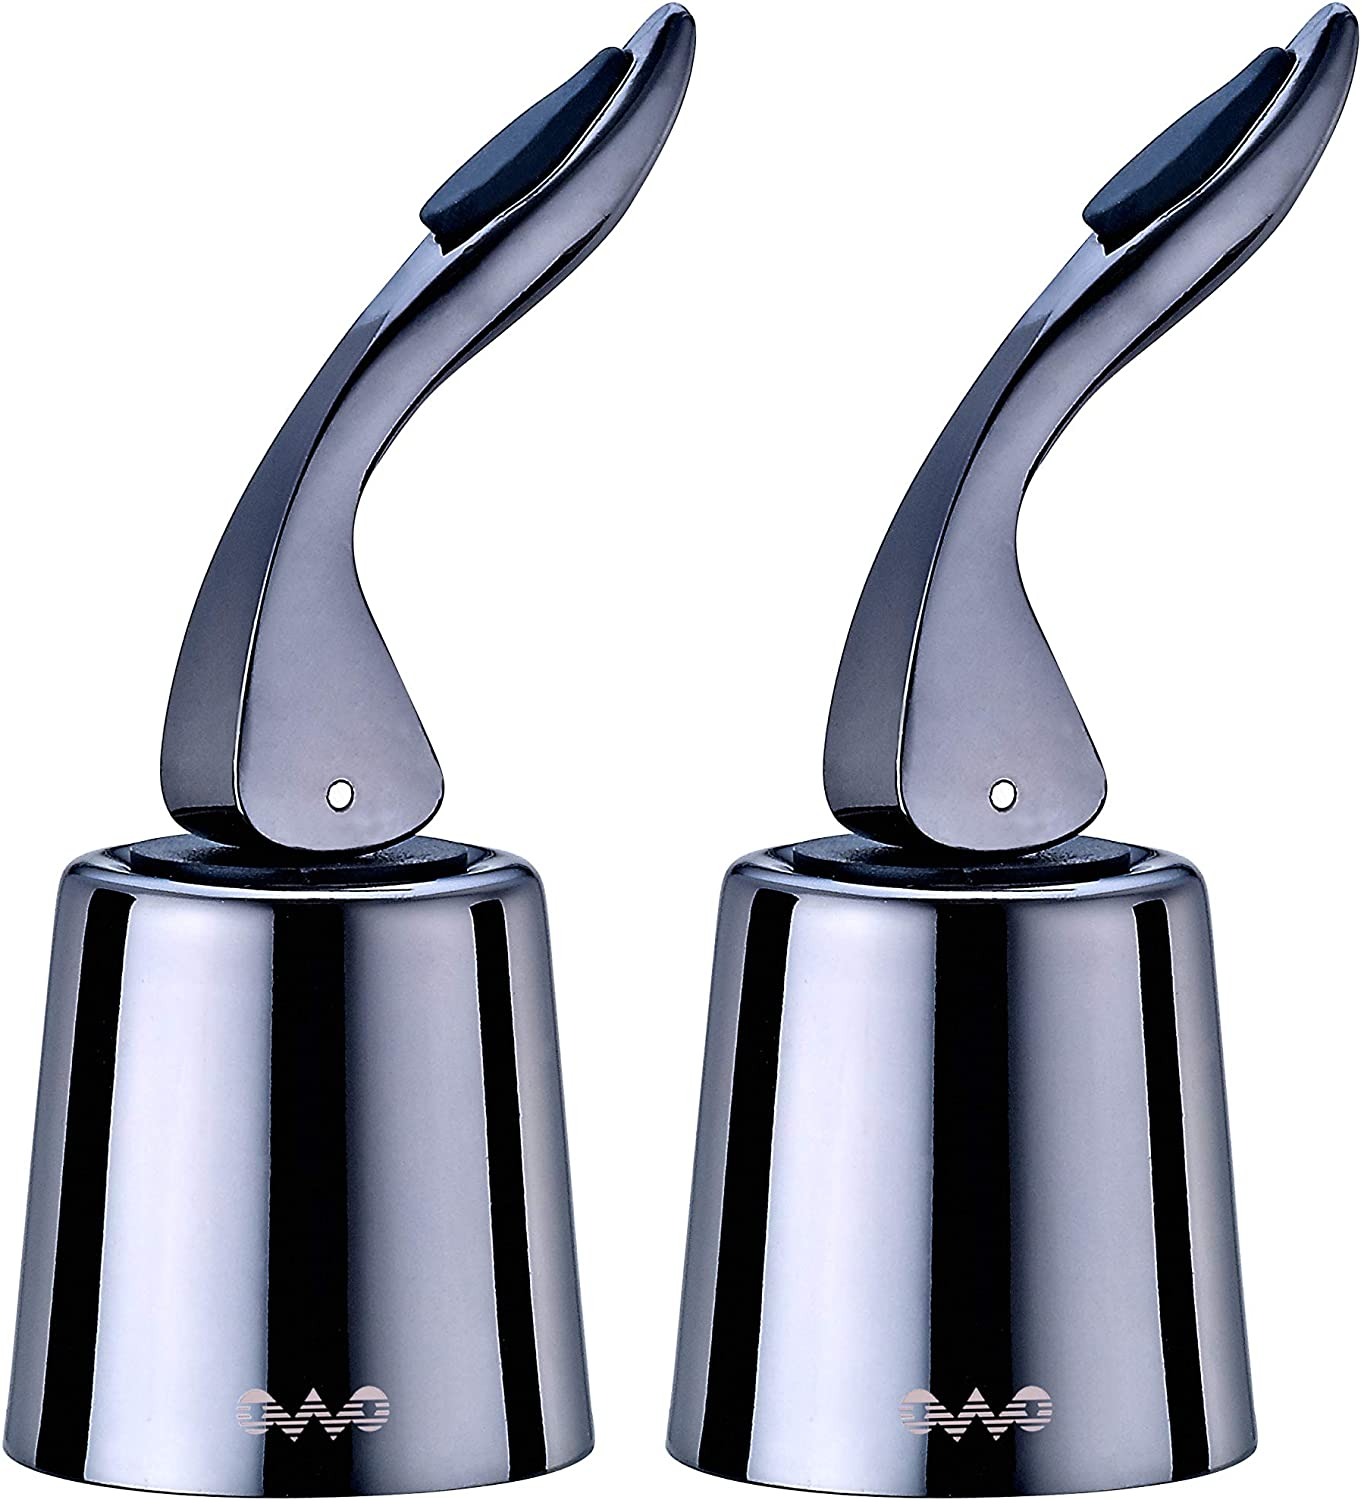 OWO Wine Stopper with Stainless Steel, Wine Preserver, Decorative Wine Saver Plug with Silicone, Expanding Beverage Bottle Stopper, Reusable Wine Cork Keeps Wine Fresh (Metal Black-2)